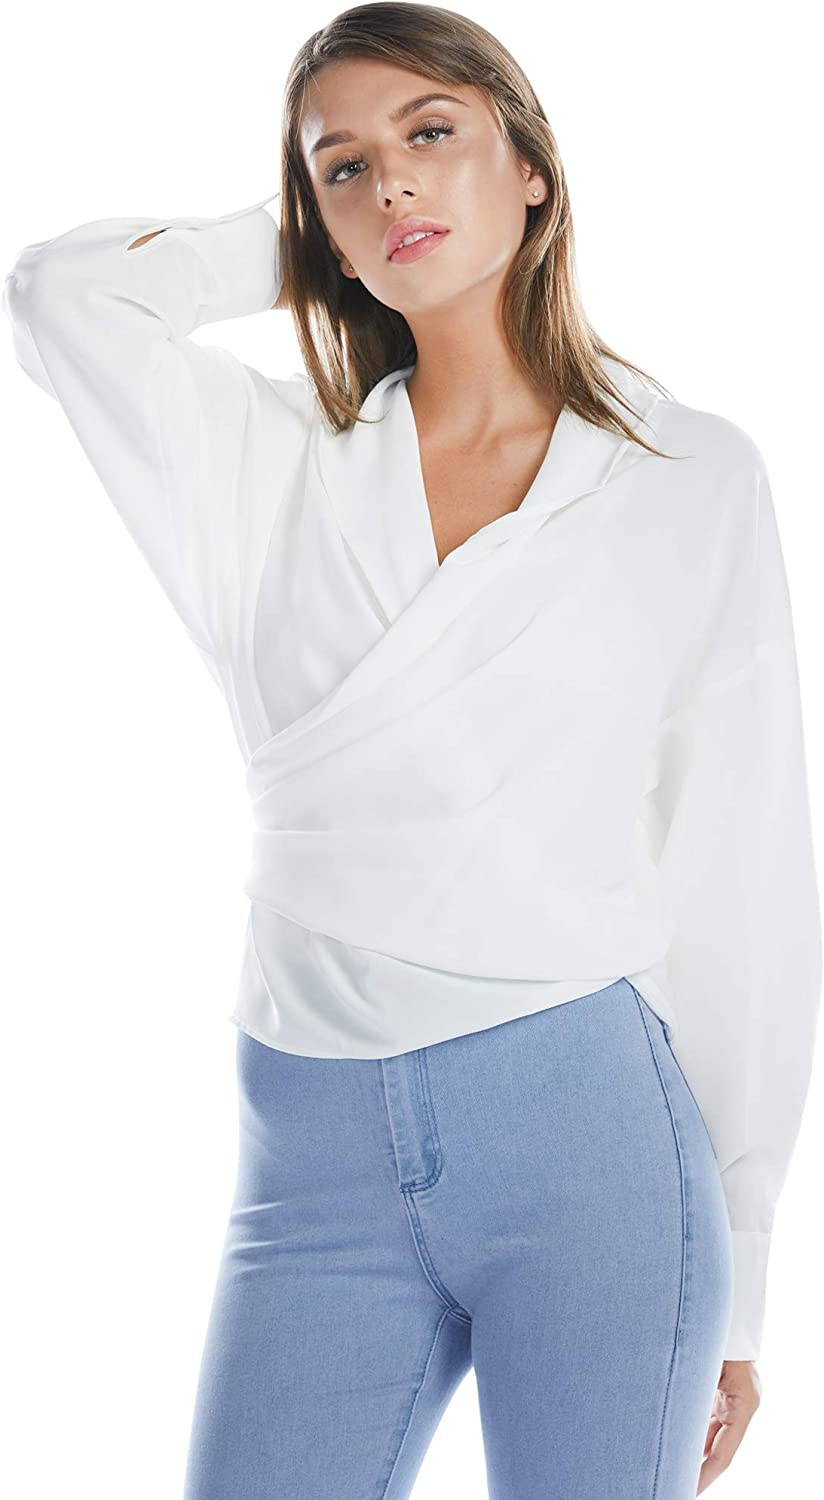 BARGOOS Women Winter All White Wrap Blouse V Neck Long Sleeve Shirts Self Tie Knot Criss Cross Cropped Top